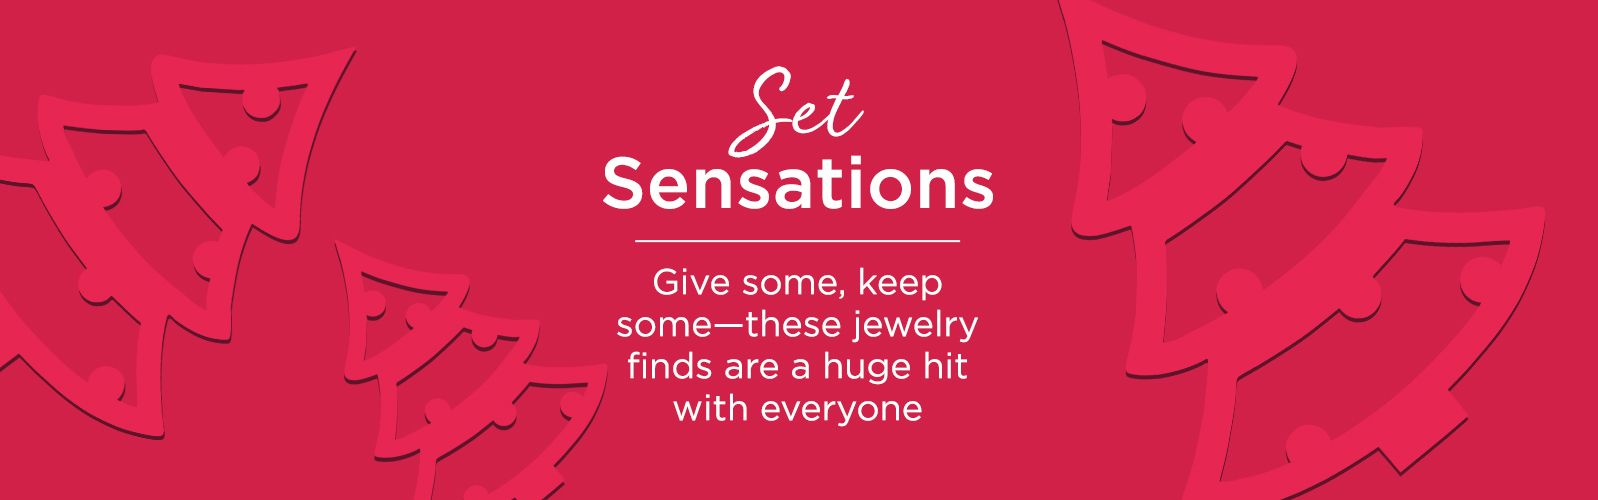 Set Sensations  Give some, keep some—these jewelry finds are a huge hit with everyone